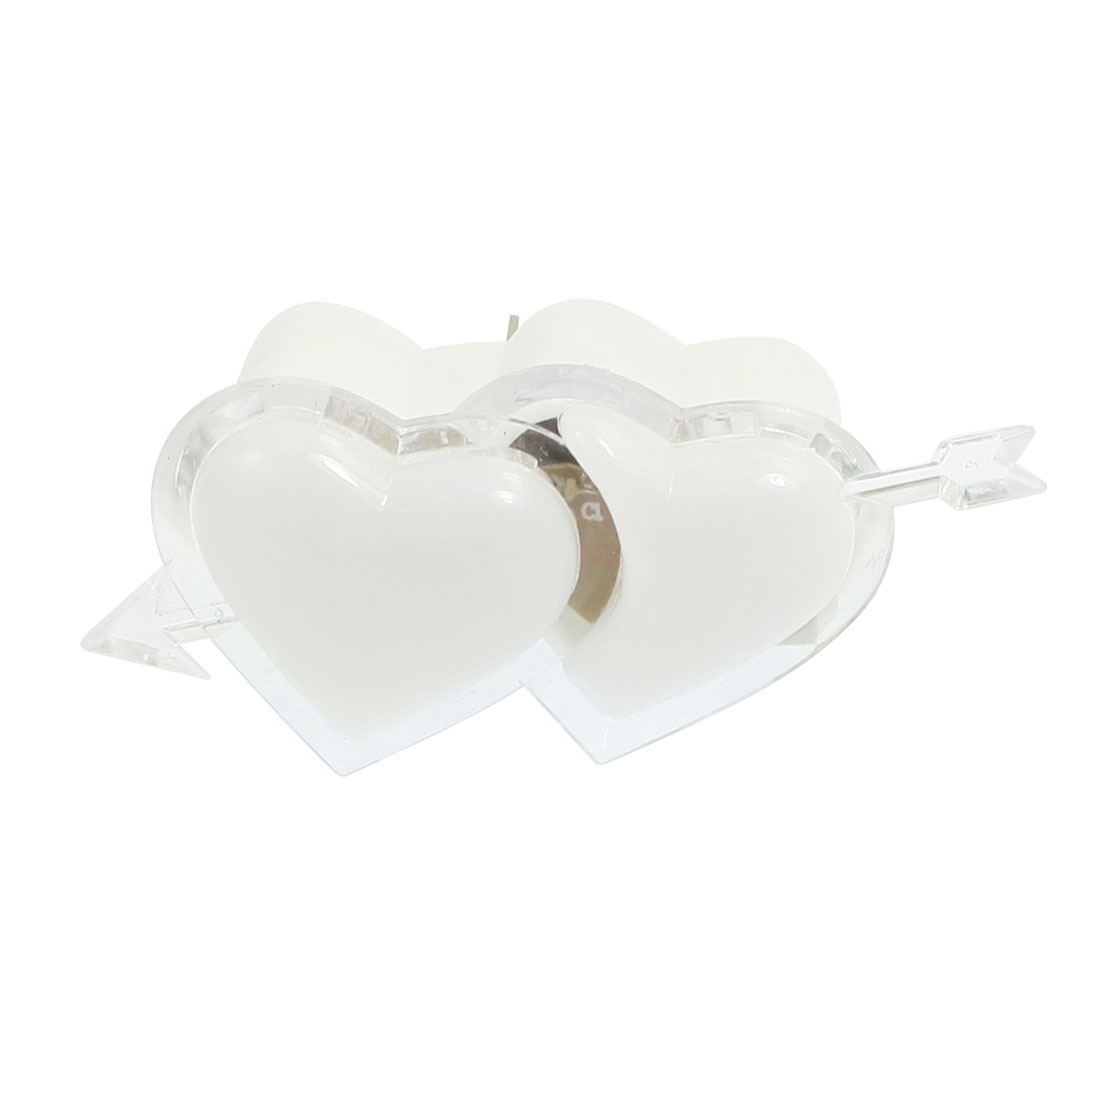 Arrow Cross Double Heart Shaped White Night Light Lamp 110-250V US Plug